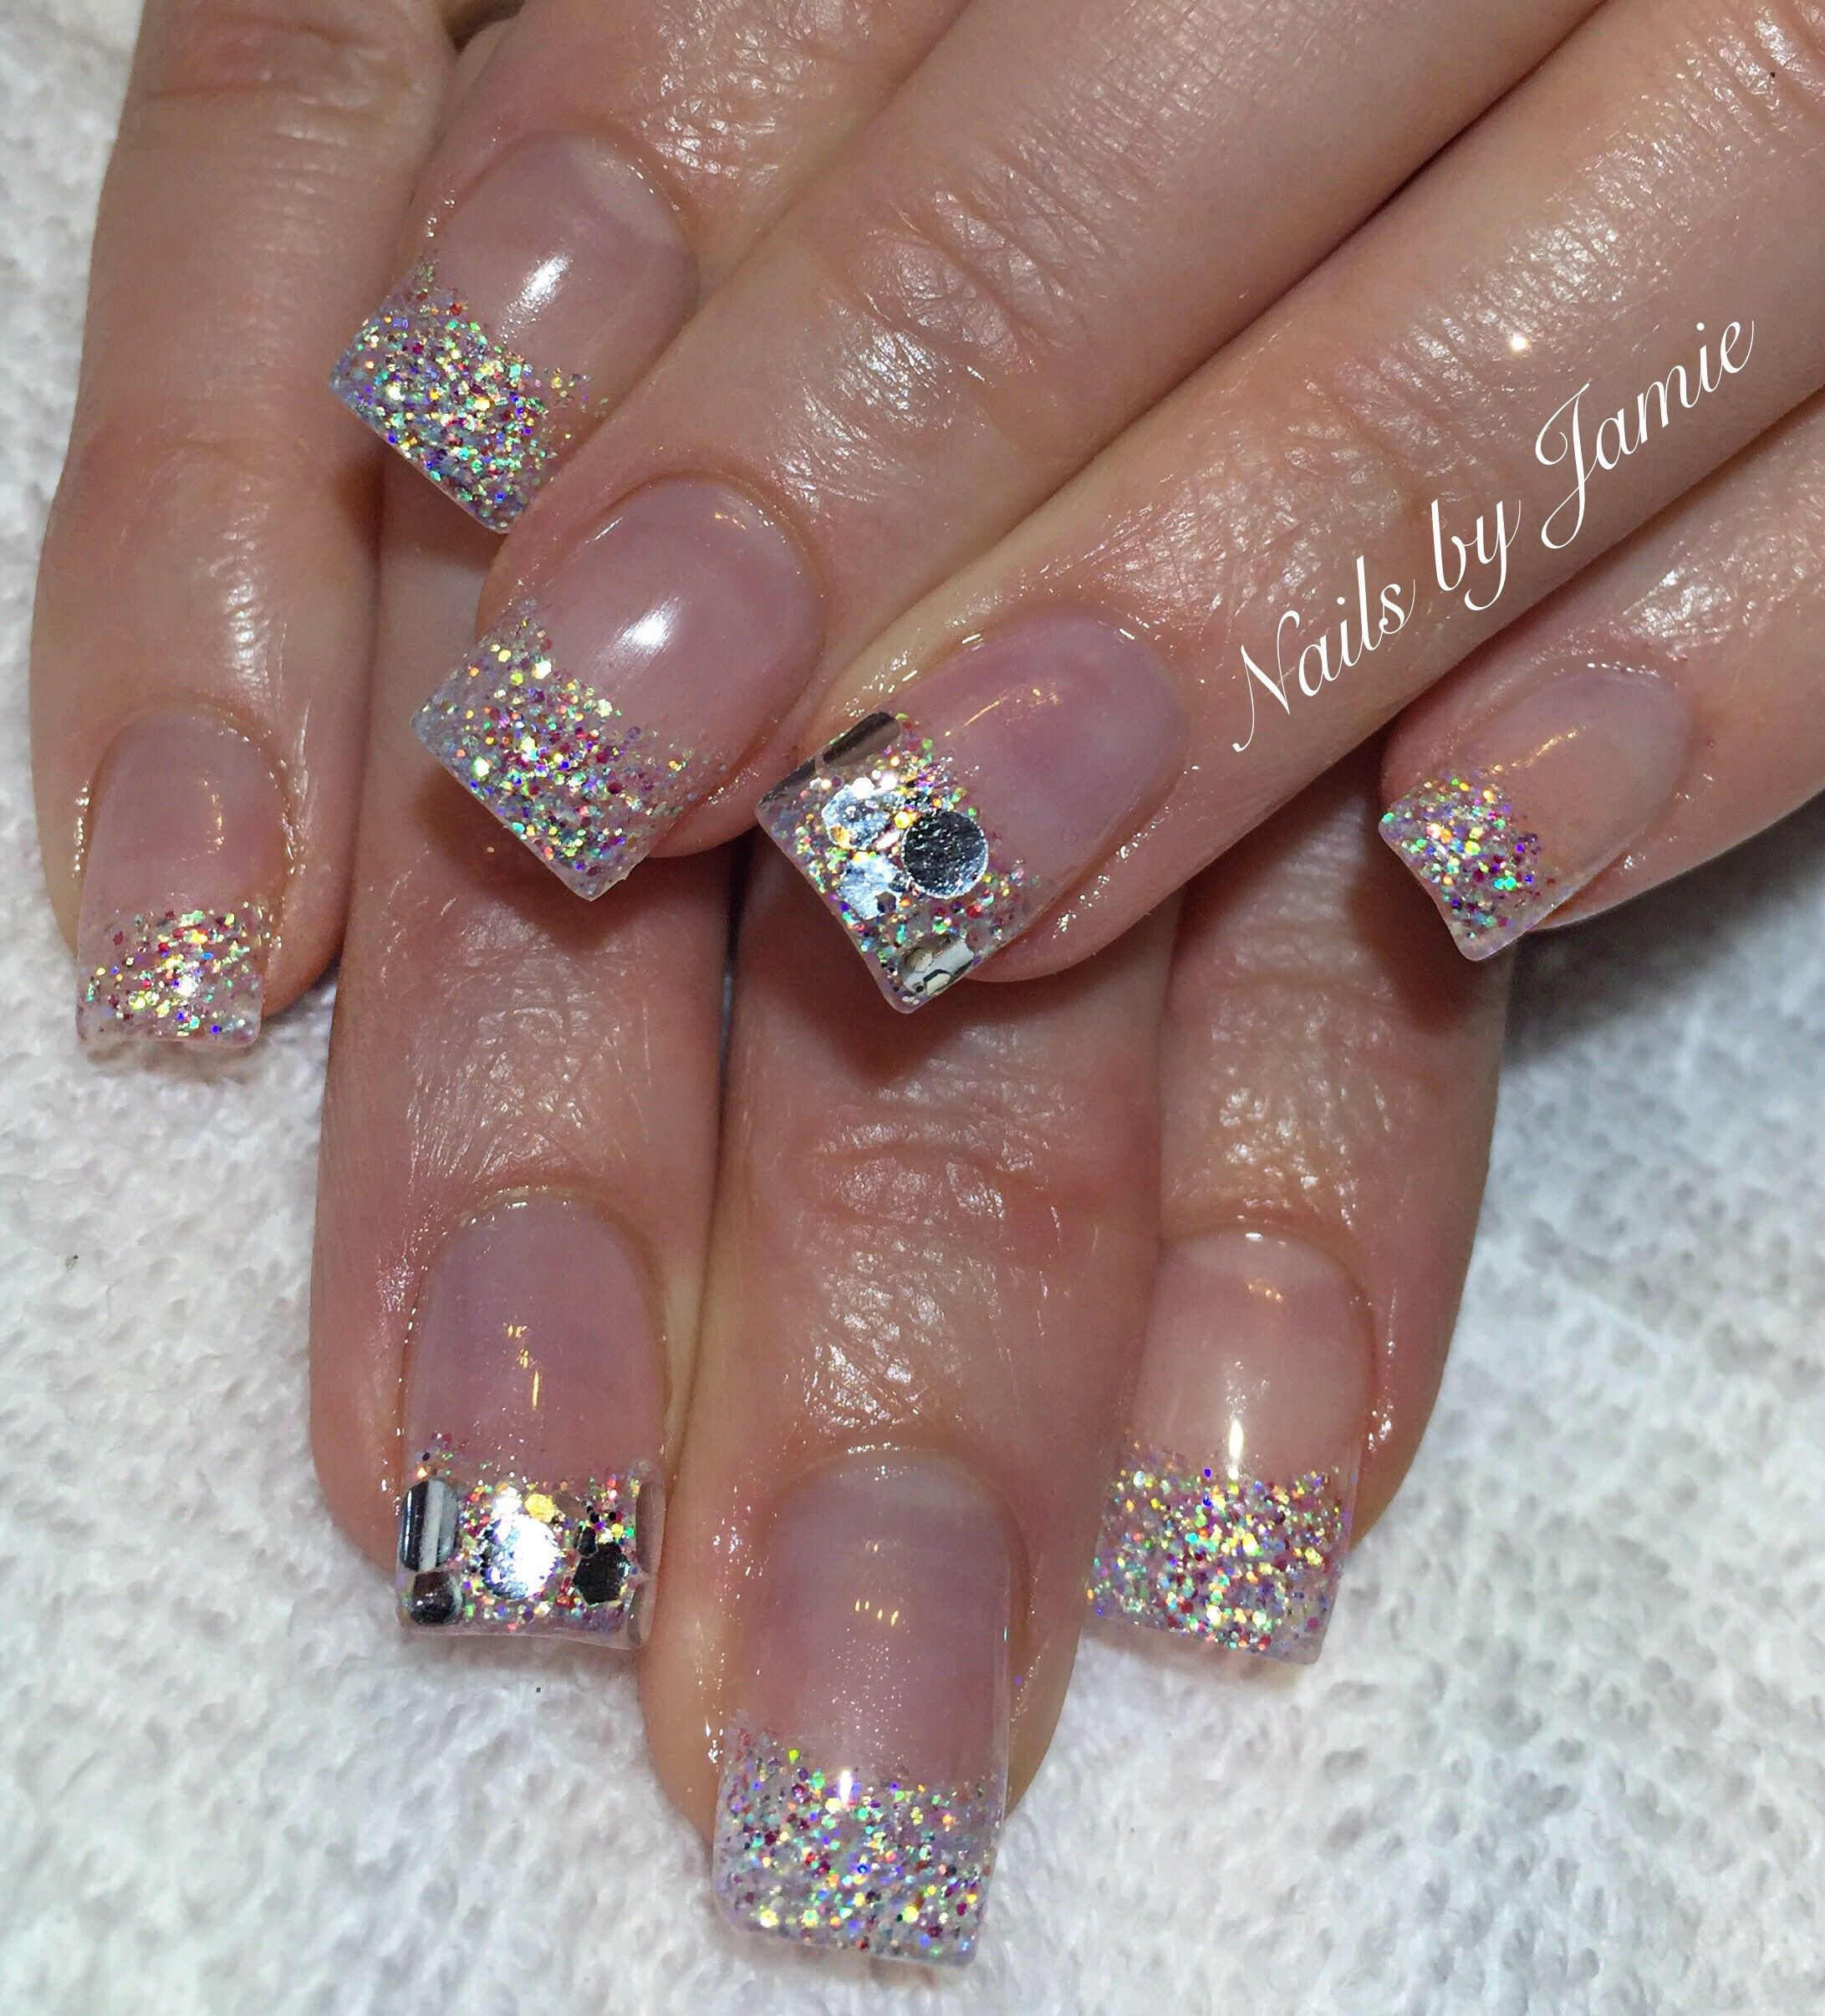 Nails by Jamie Duffield Eugene, Oregon To book an appointment call ...